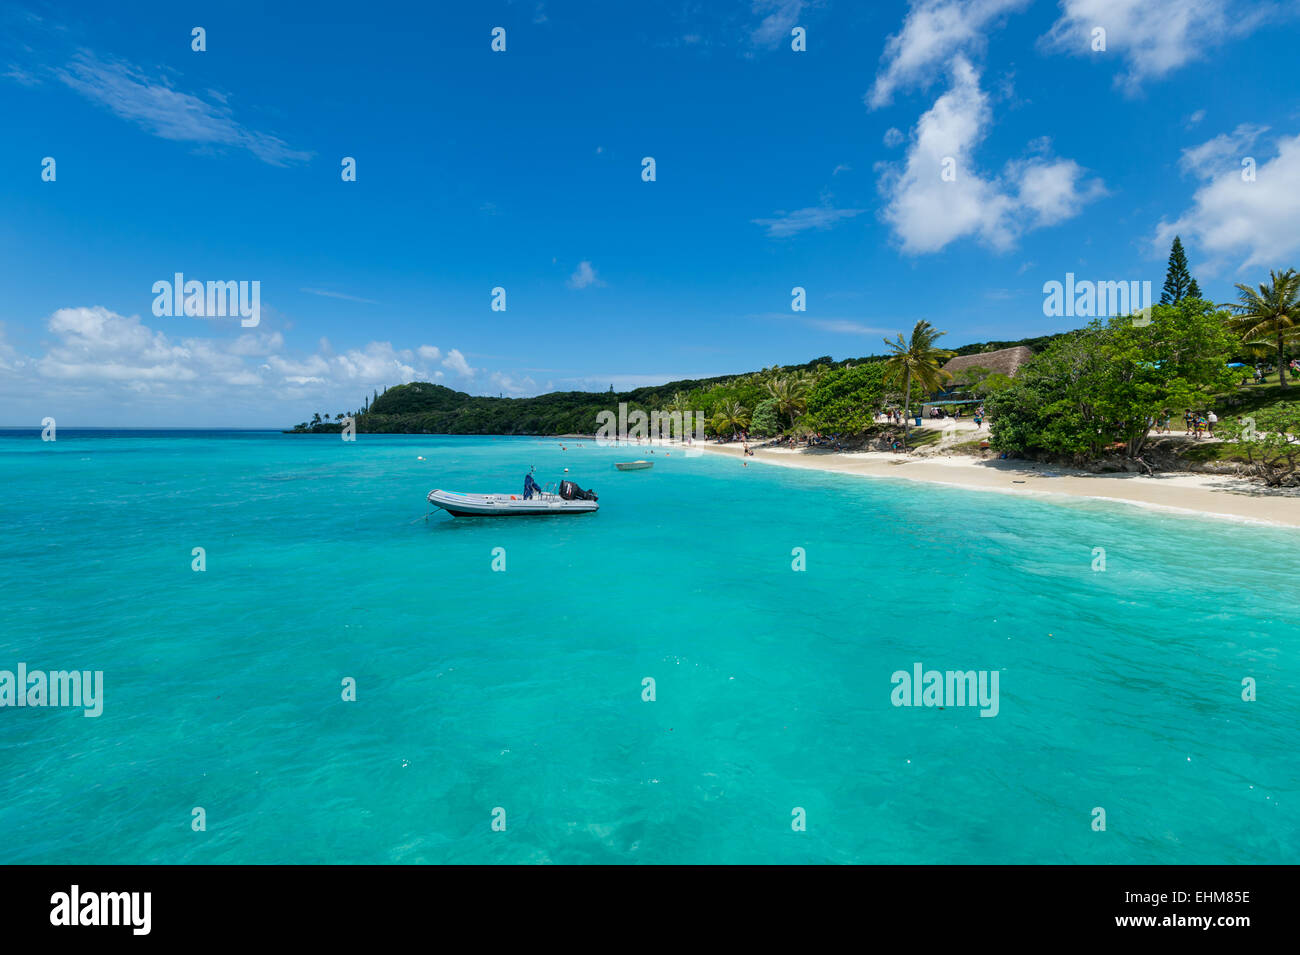 Beautiful crystal clear water of the tropical south pacific island of Lifou. - Stock Image